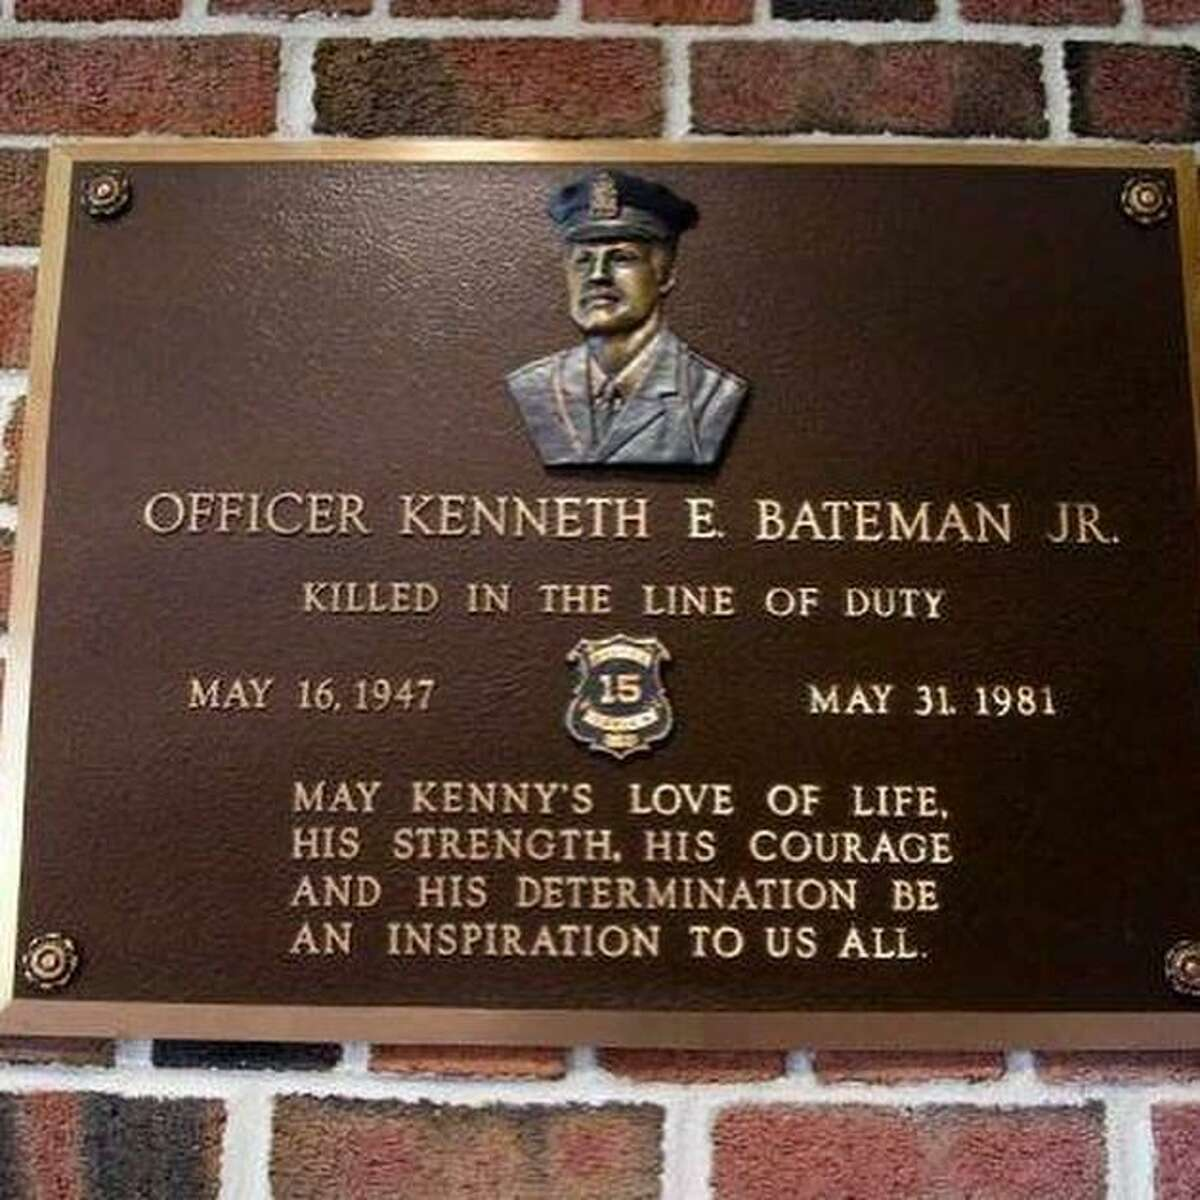 Officer Kenneth E. Bateman, Jr., was shot and killed around 3 a.m. on May 31, 1981, in Darien, Conn. He was sent to the fast food joint to check on a commercial burglar alarm activation.